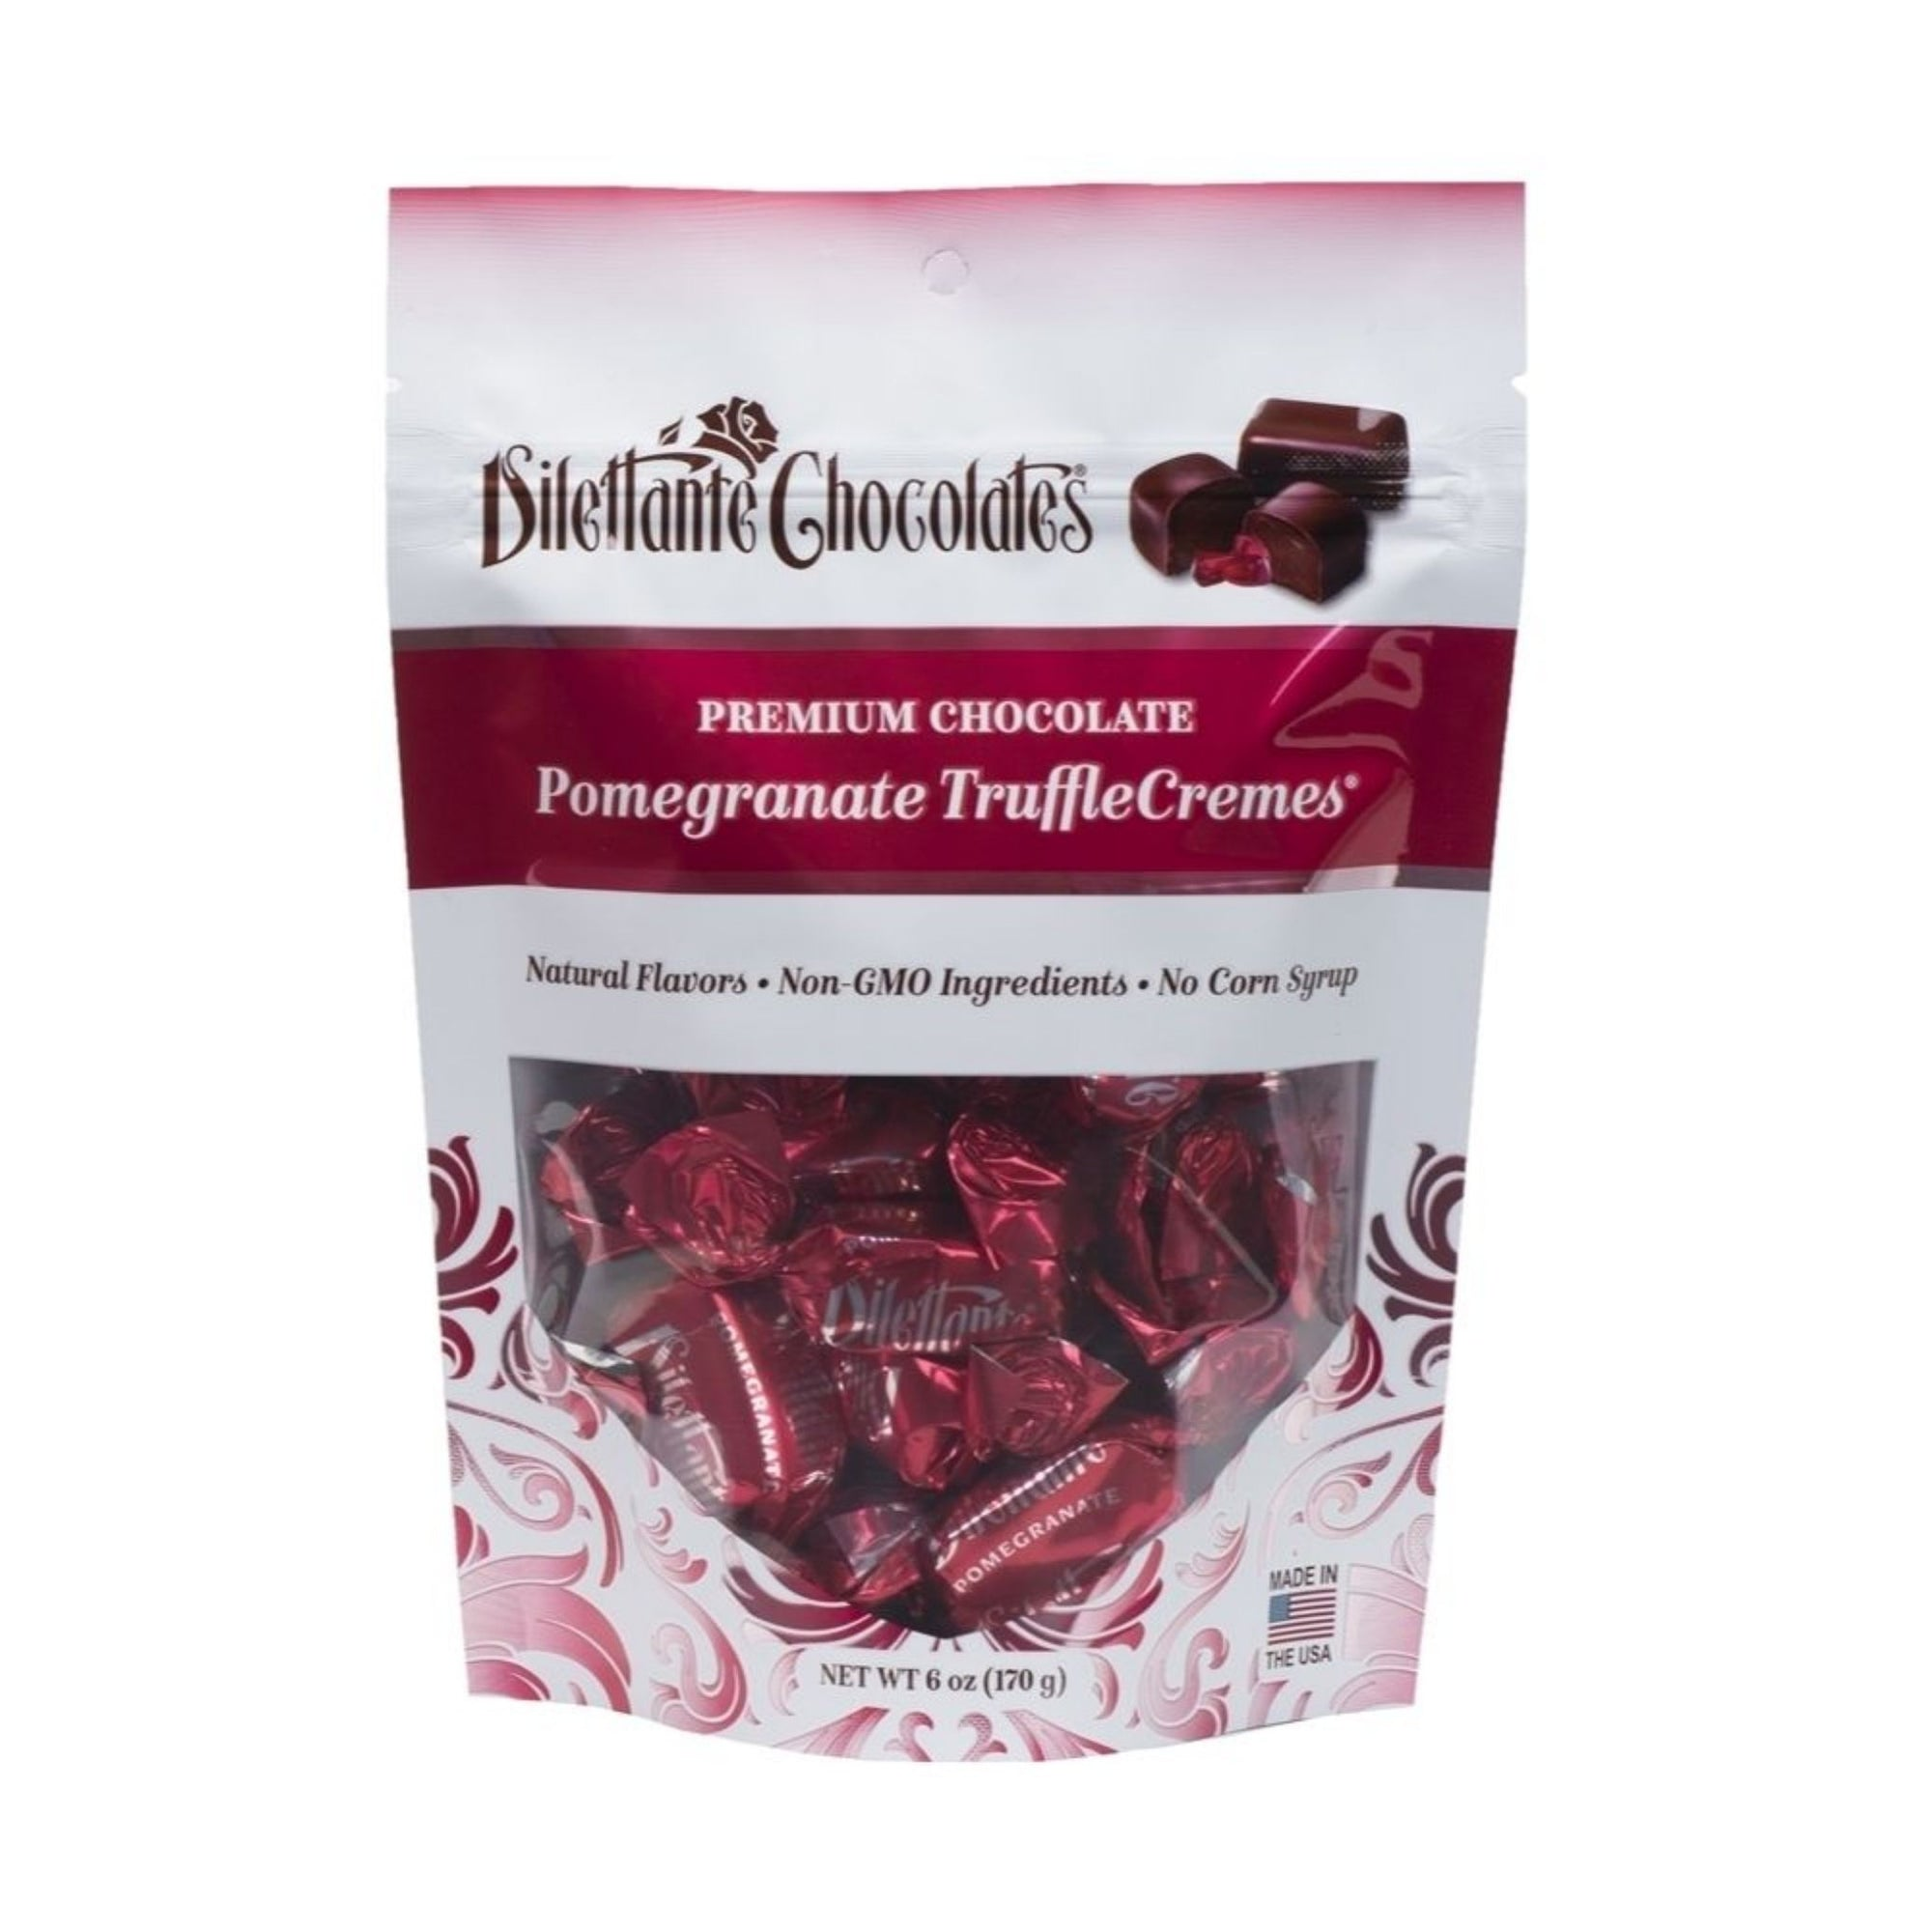 Dilettante Chocolates Premium Chocolate Pomegranate TruffleCremes Made with Natural Flavors, Non-GMO Ingredients and No Corn Syrup